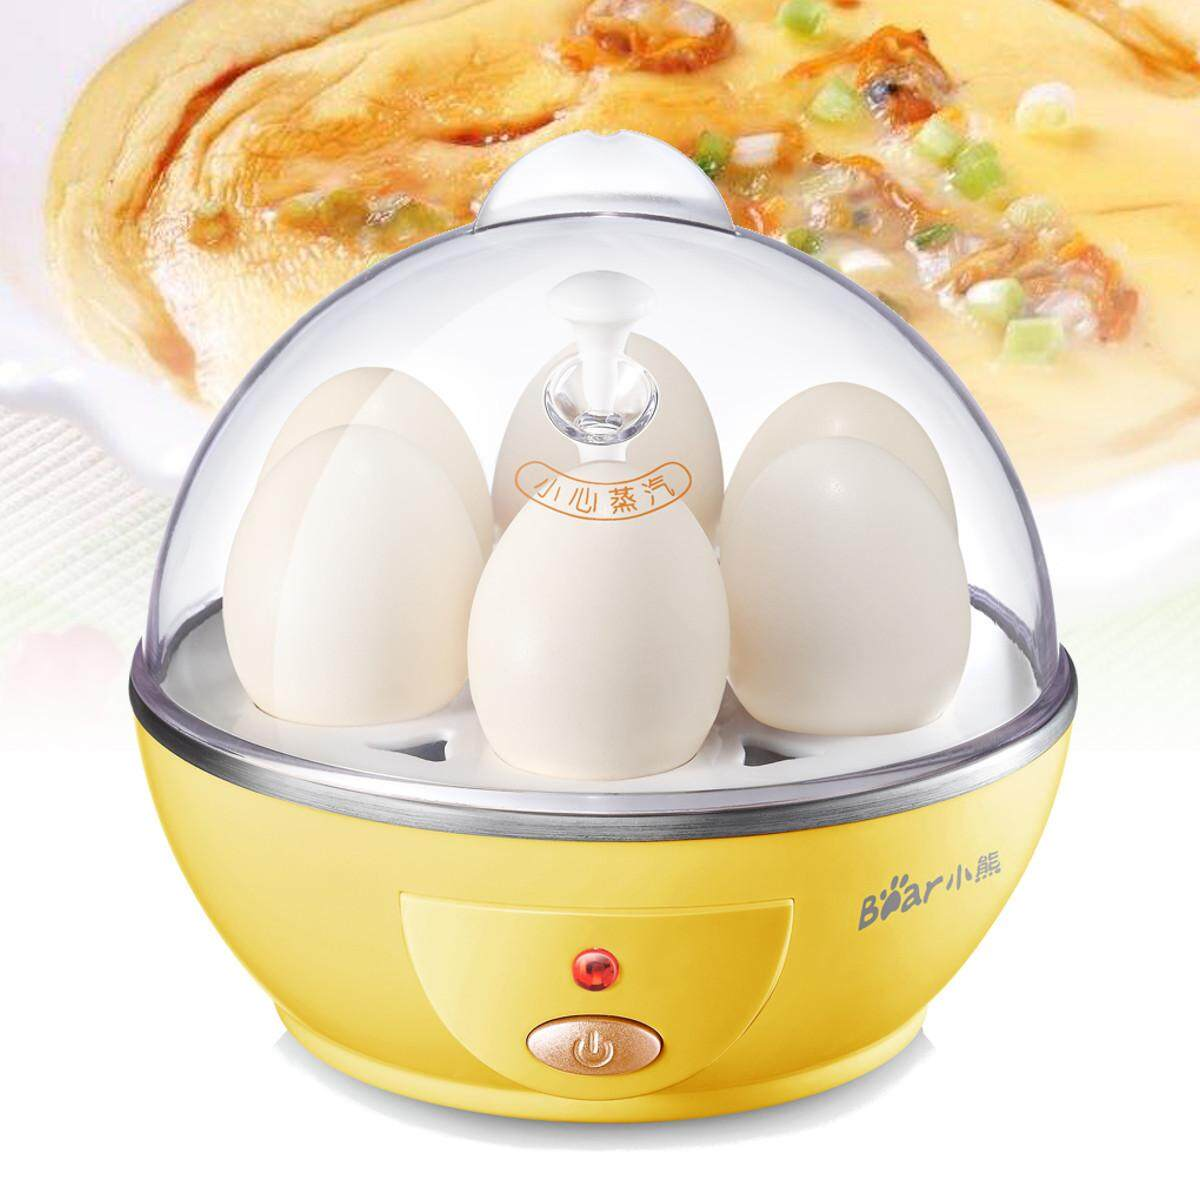 6 Egg Boiler Multifunction Mini Electric Cooker Steamer Poacher Auto Power-Off - Intl By Freebang.